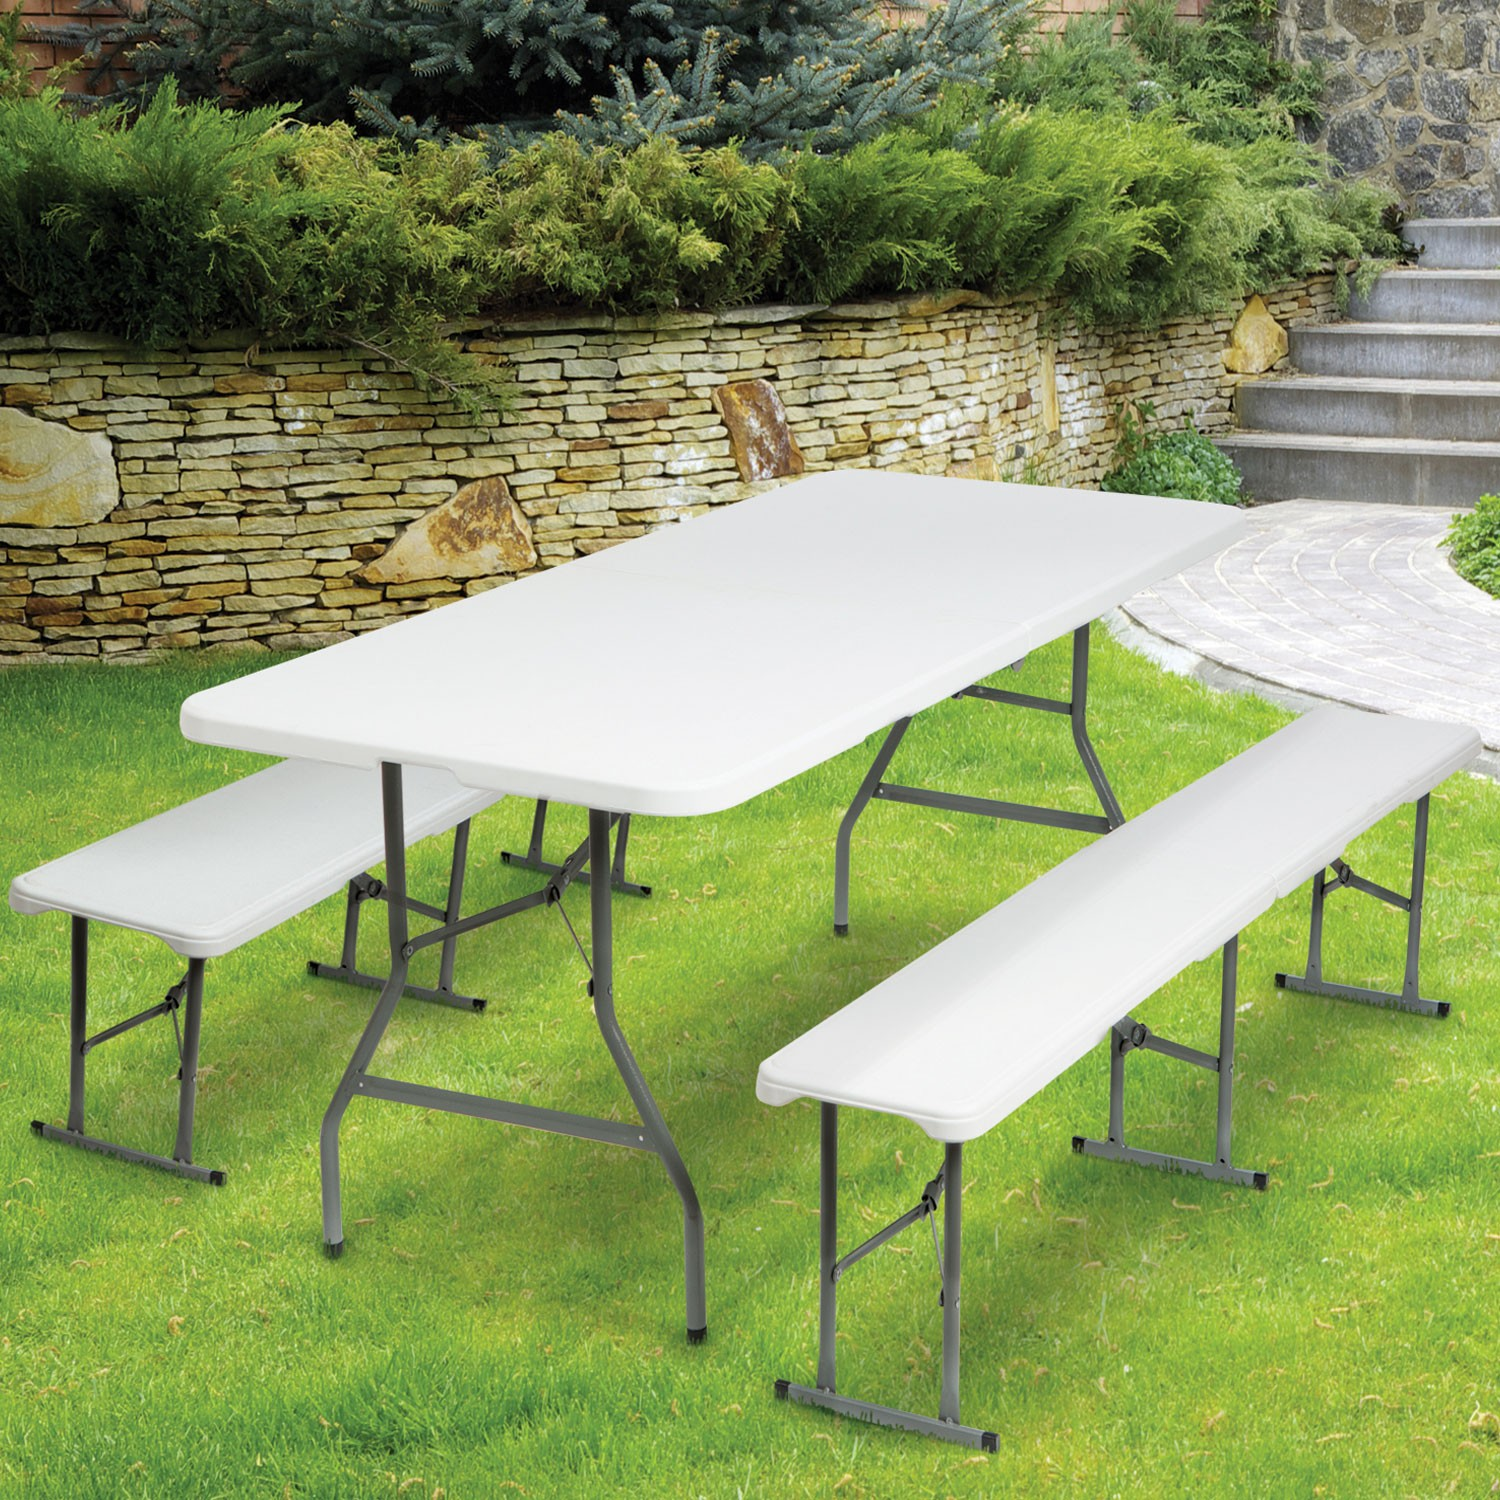 Table Plastique Carrefour Amazing Table Pliante Portable Cm Et Bancs Pliables Pour